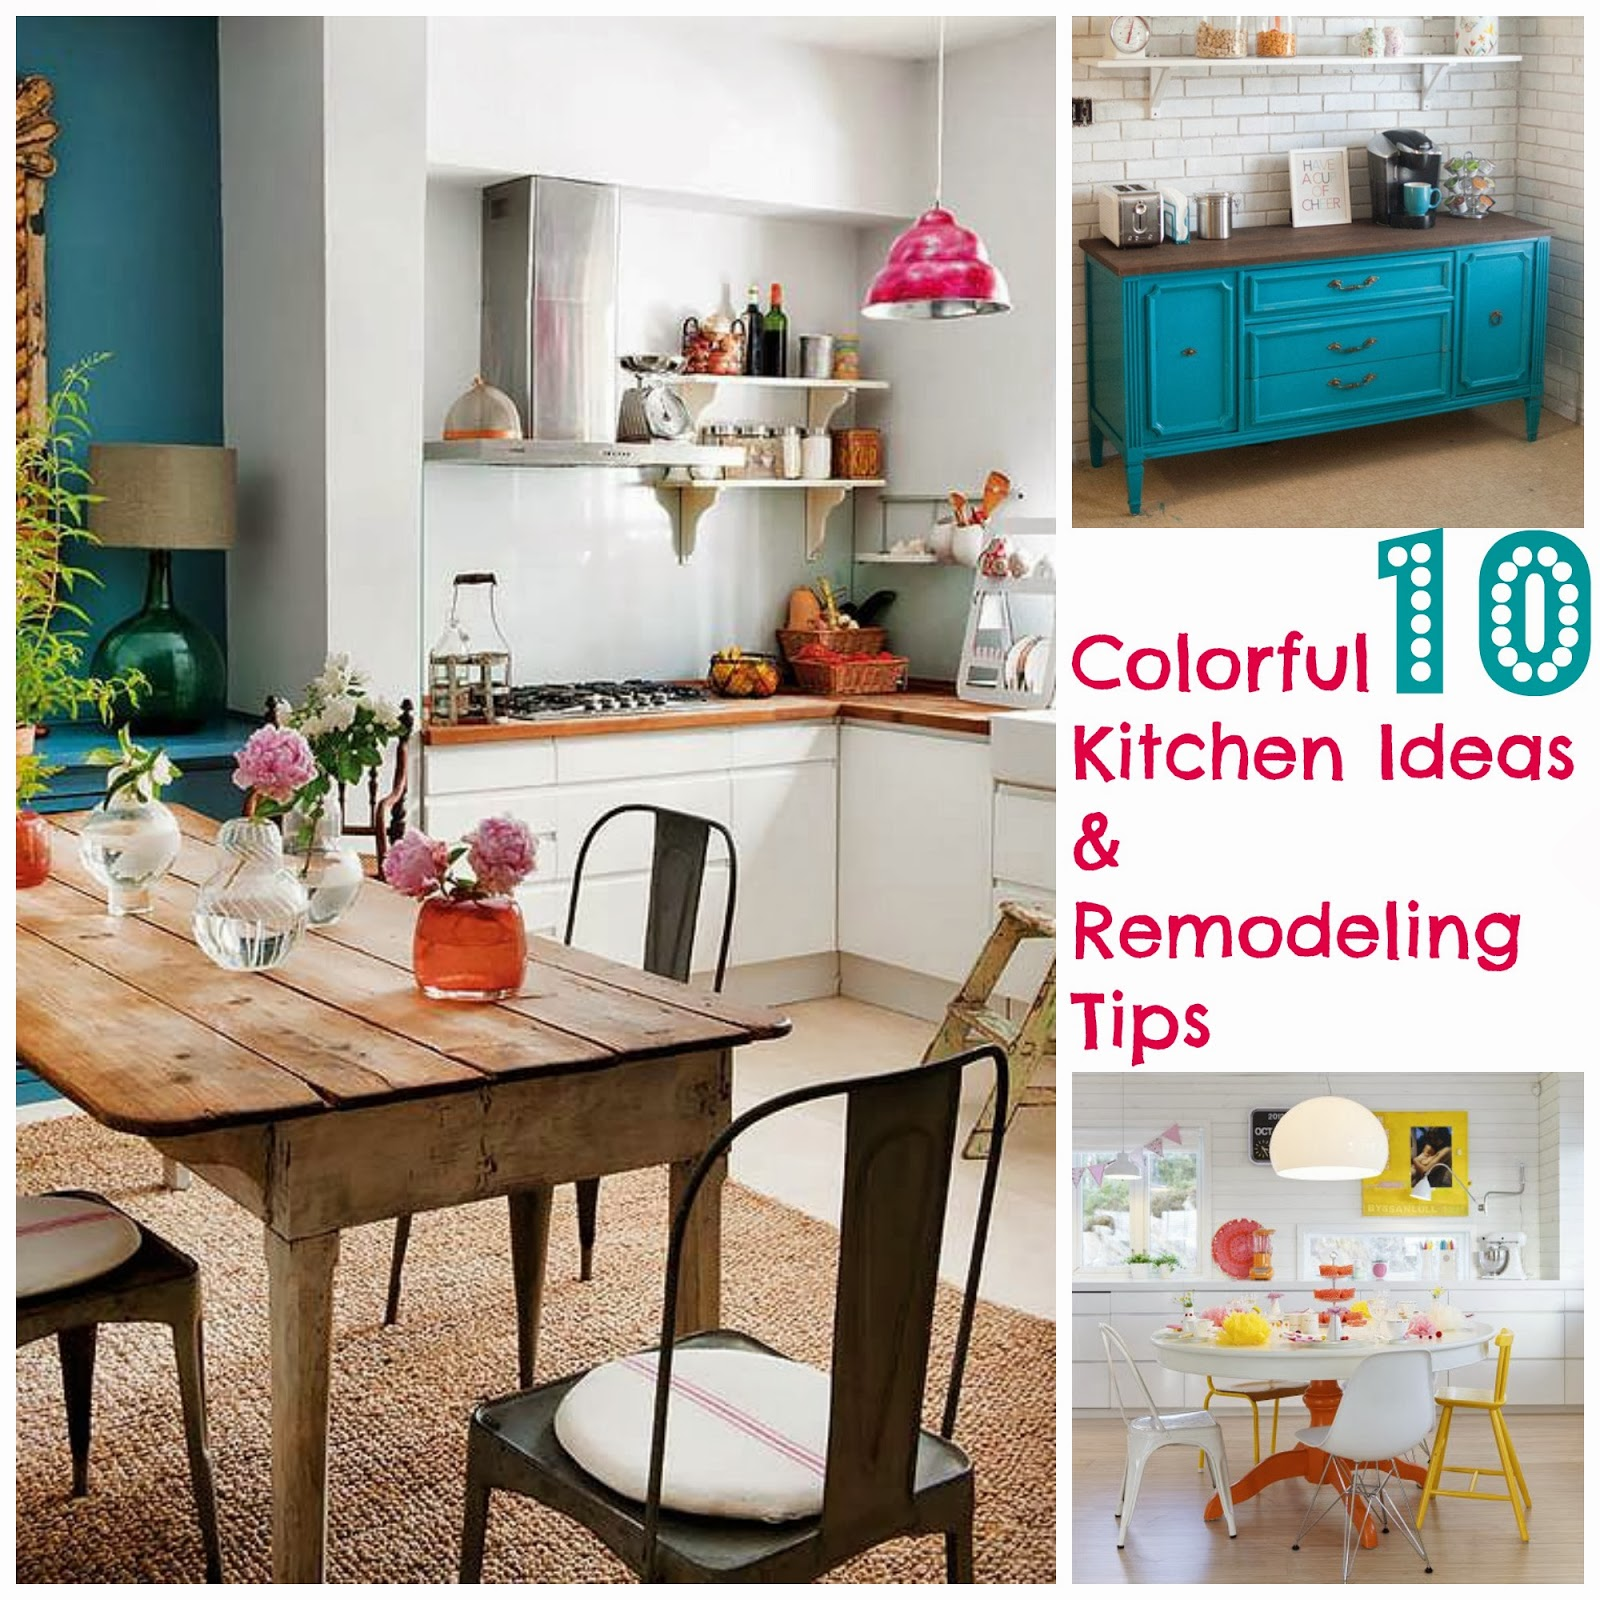 Kitchen Colors Ideas: The Sweetest Memory: 10 Colorful Kitchen Ideas